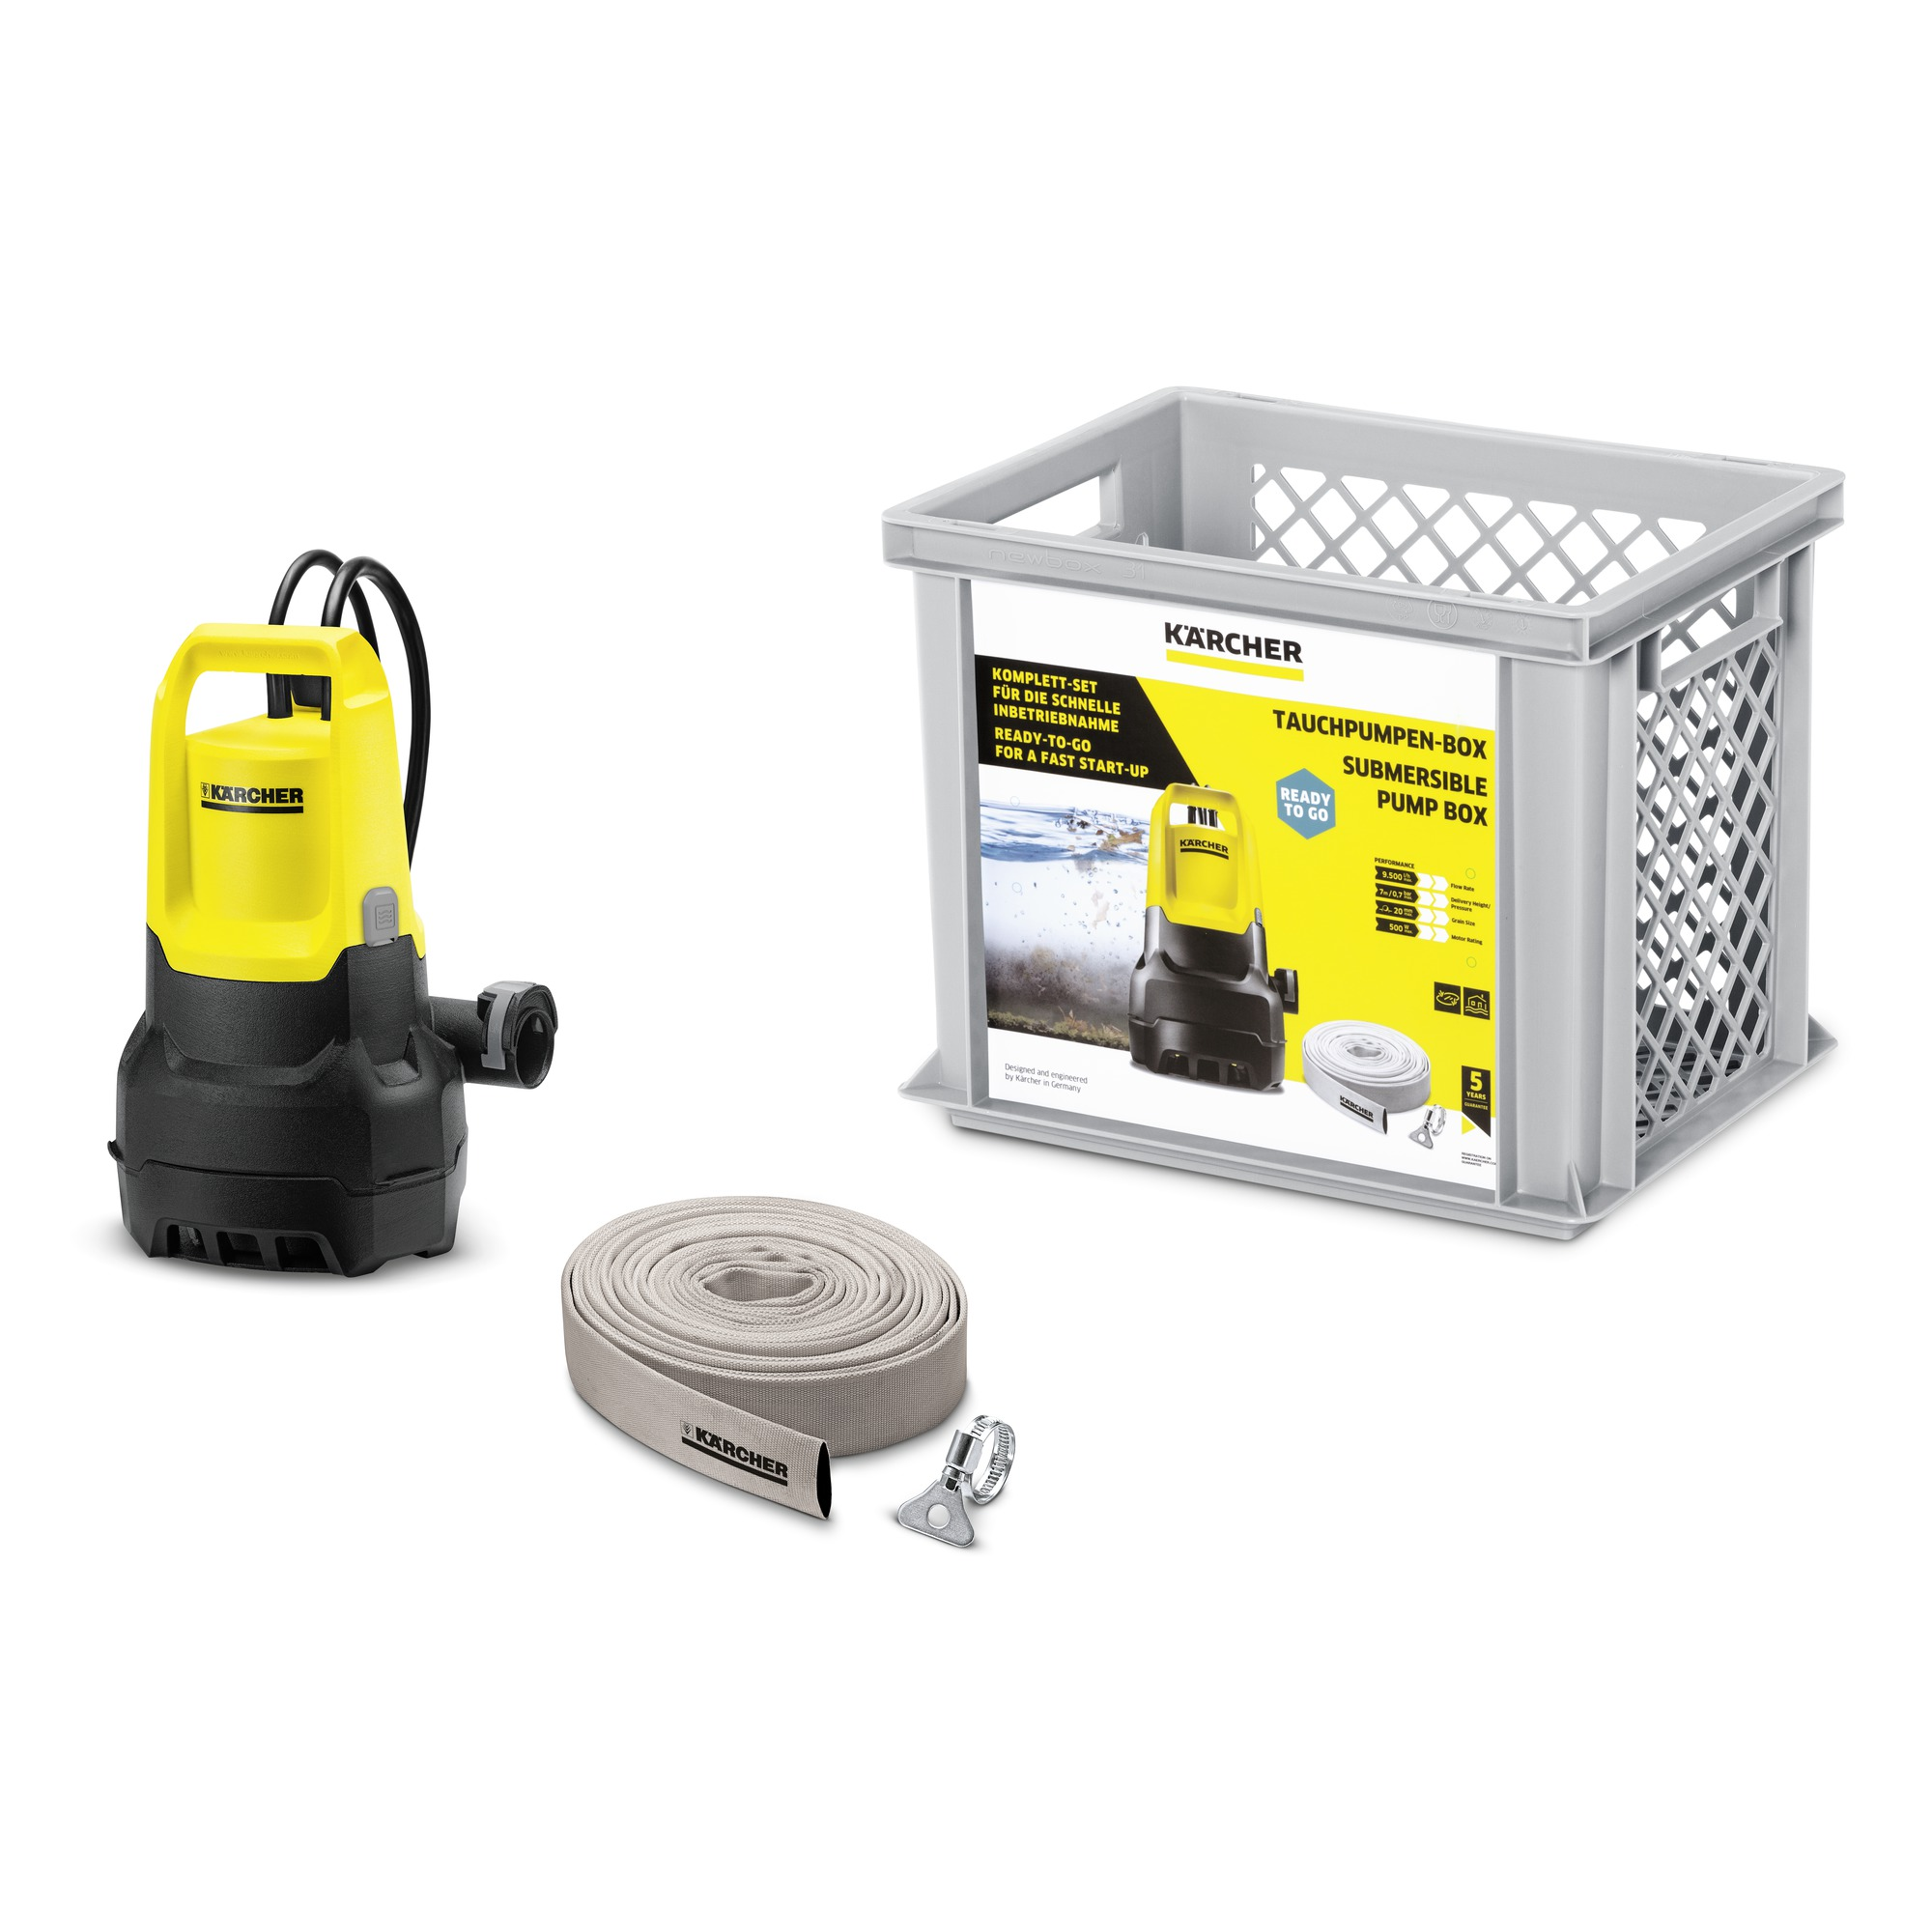 SP 5 Dirt Set 1.645-507.0 KARCHER - KARCHER PREMIER CENTER